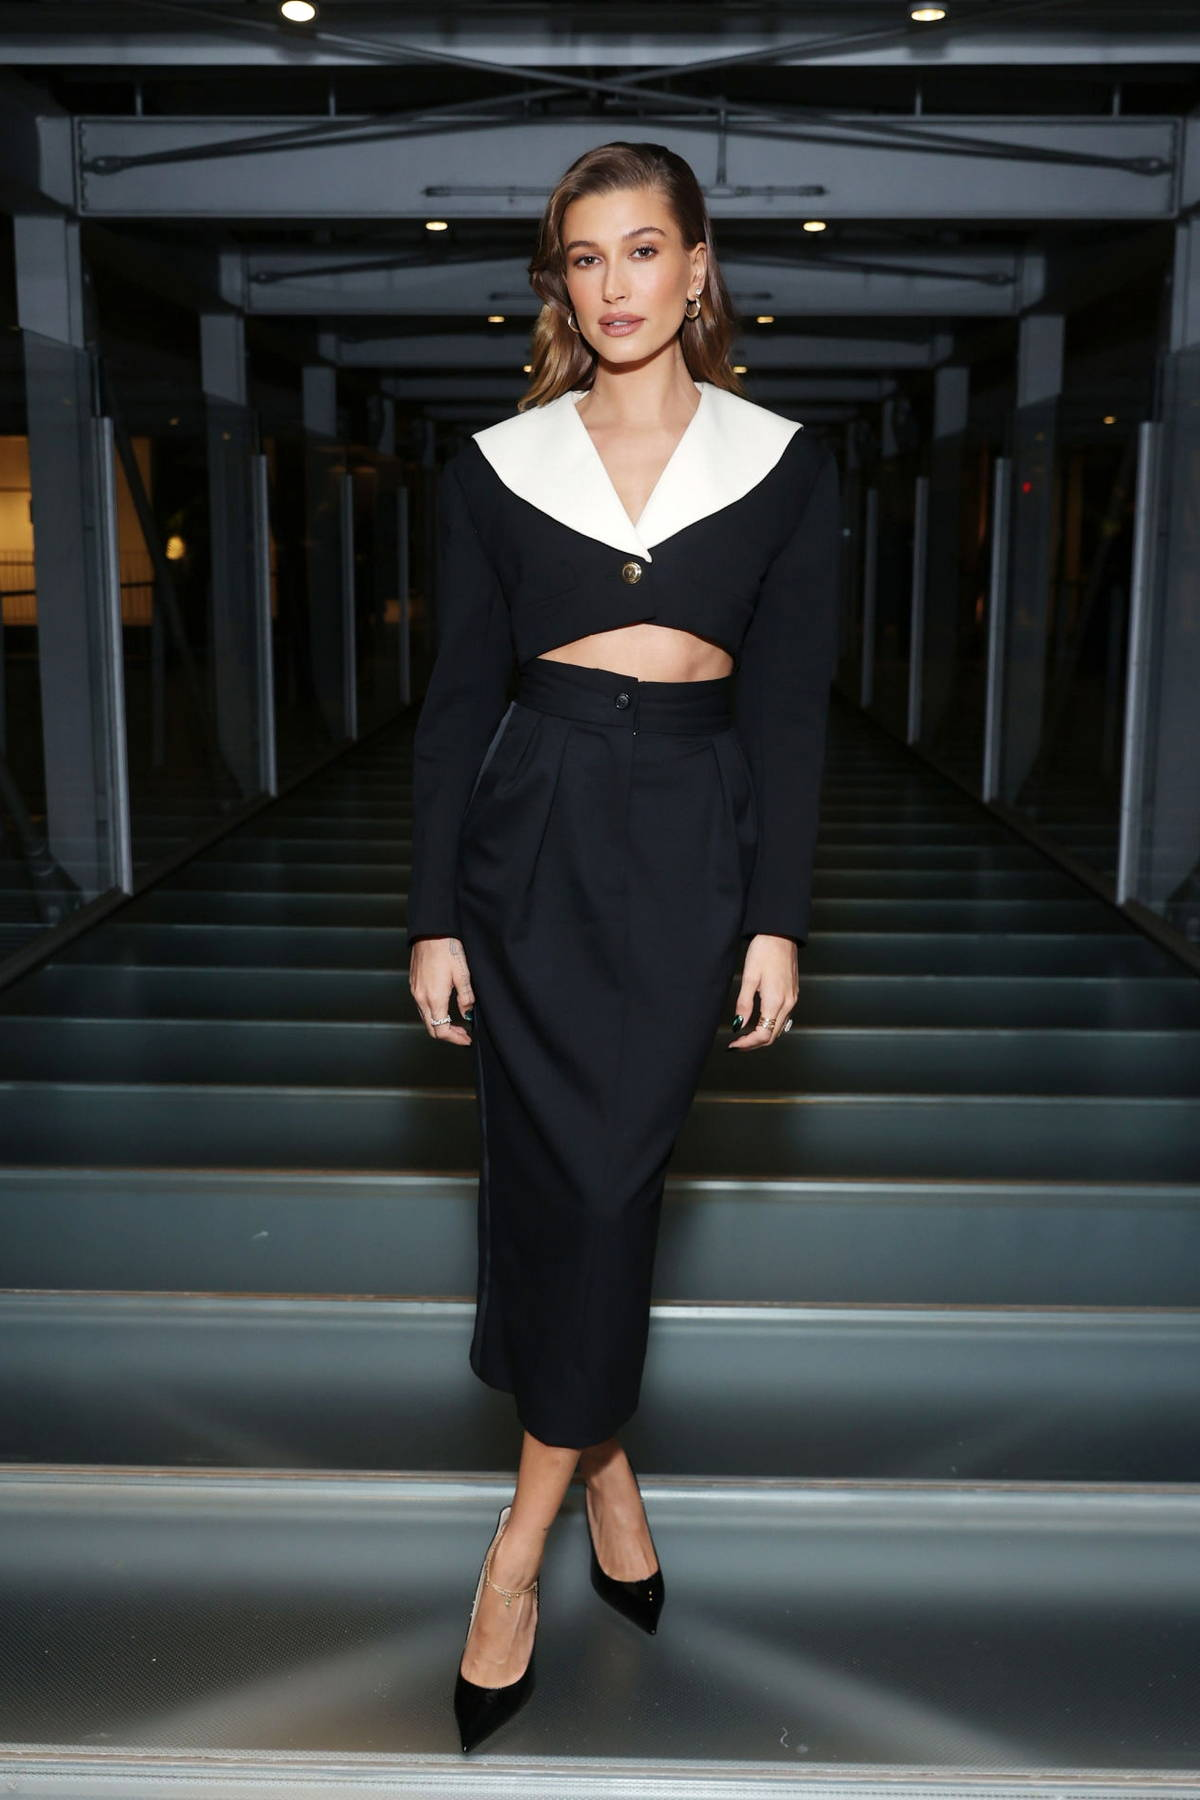 Hailey Bieber attends ELLE's 27th Annual Women In Hollywood Celebration in Los Angeles